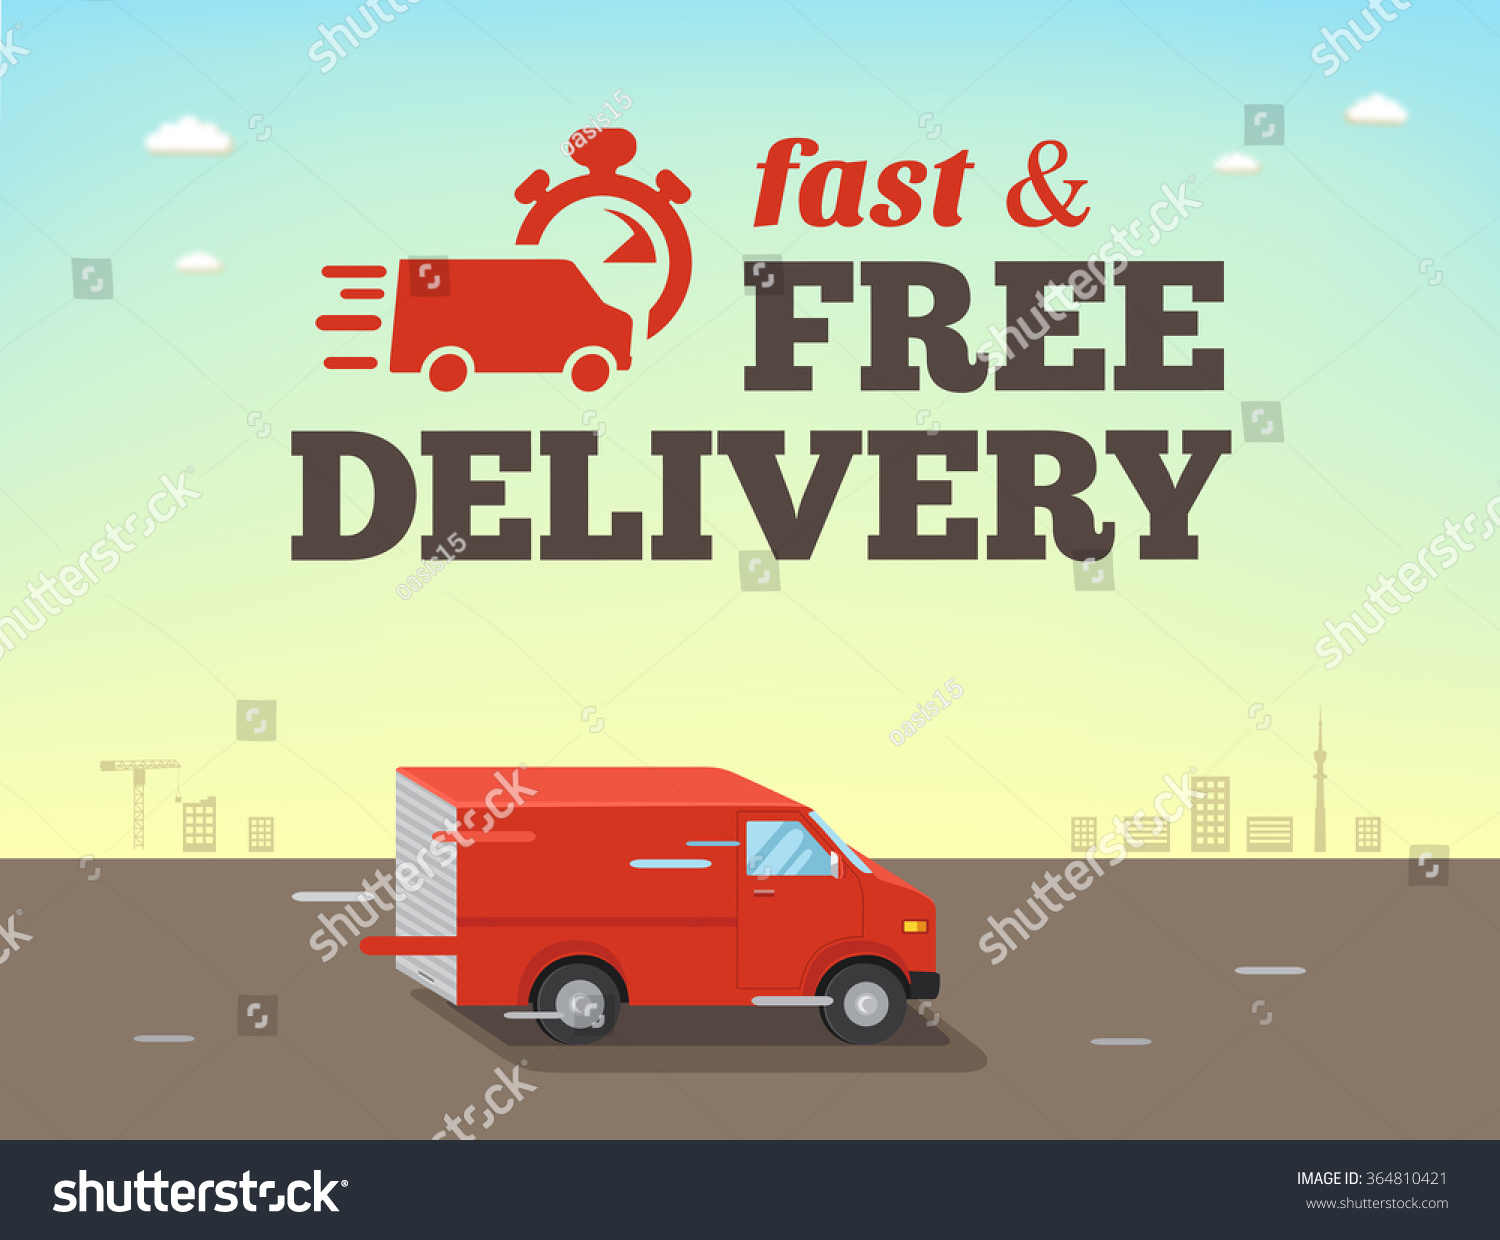 Illustration Of Fast Shipping Concept. Truck Van Of